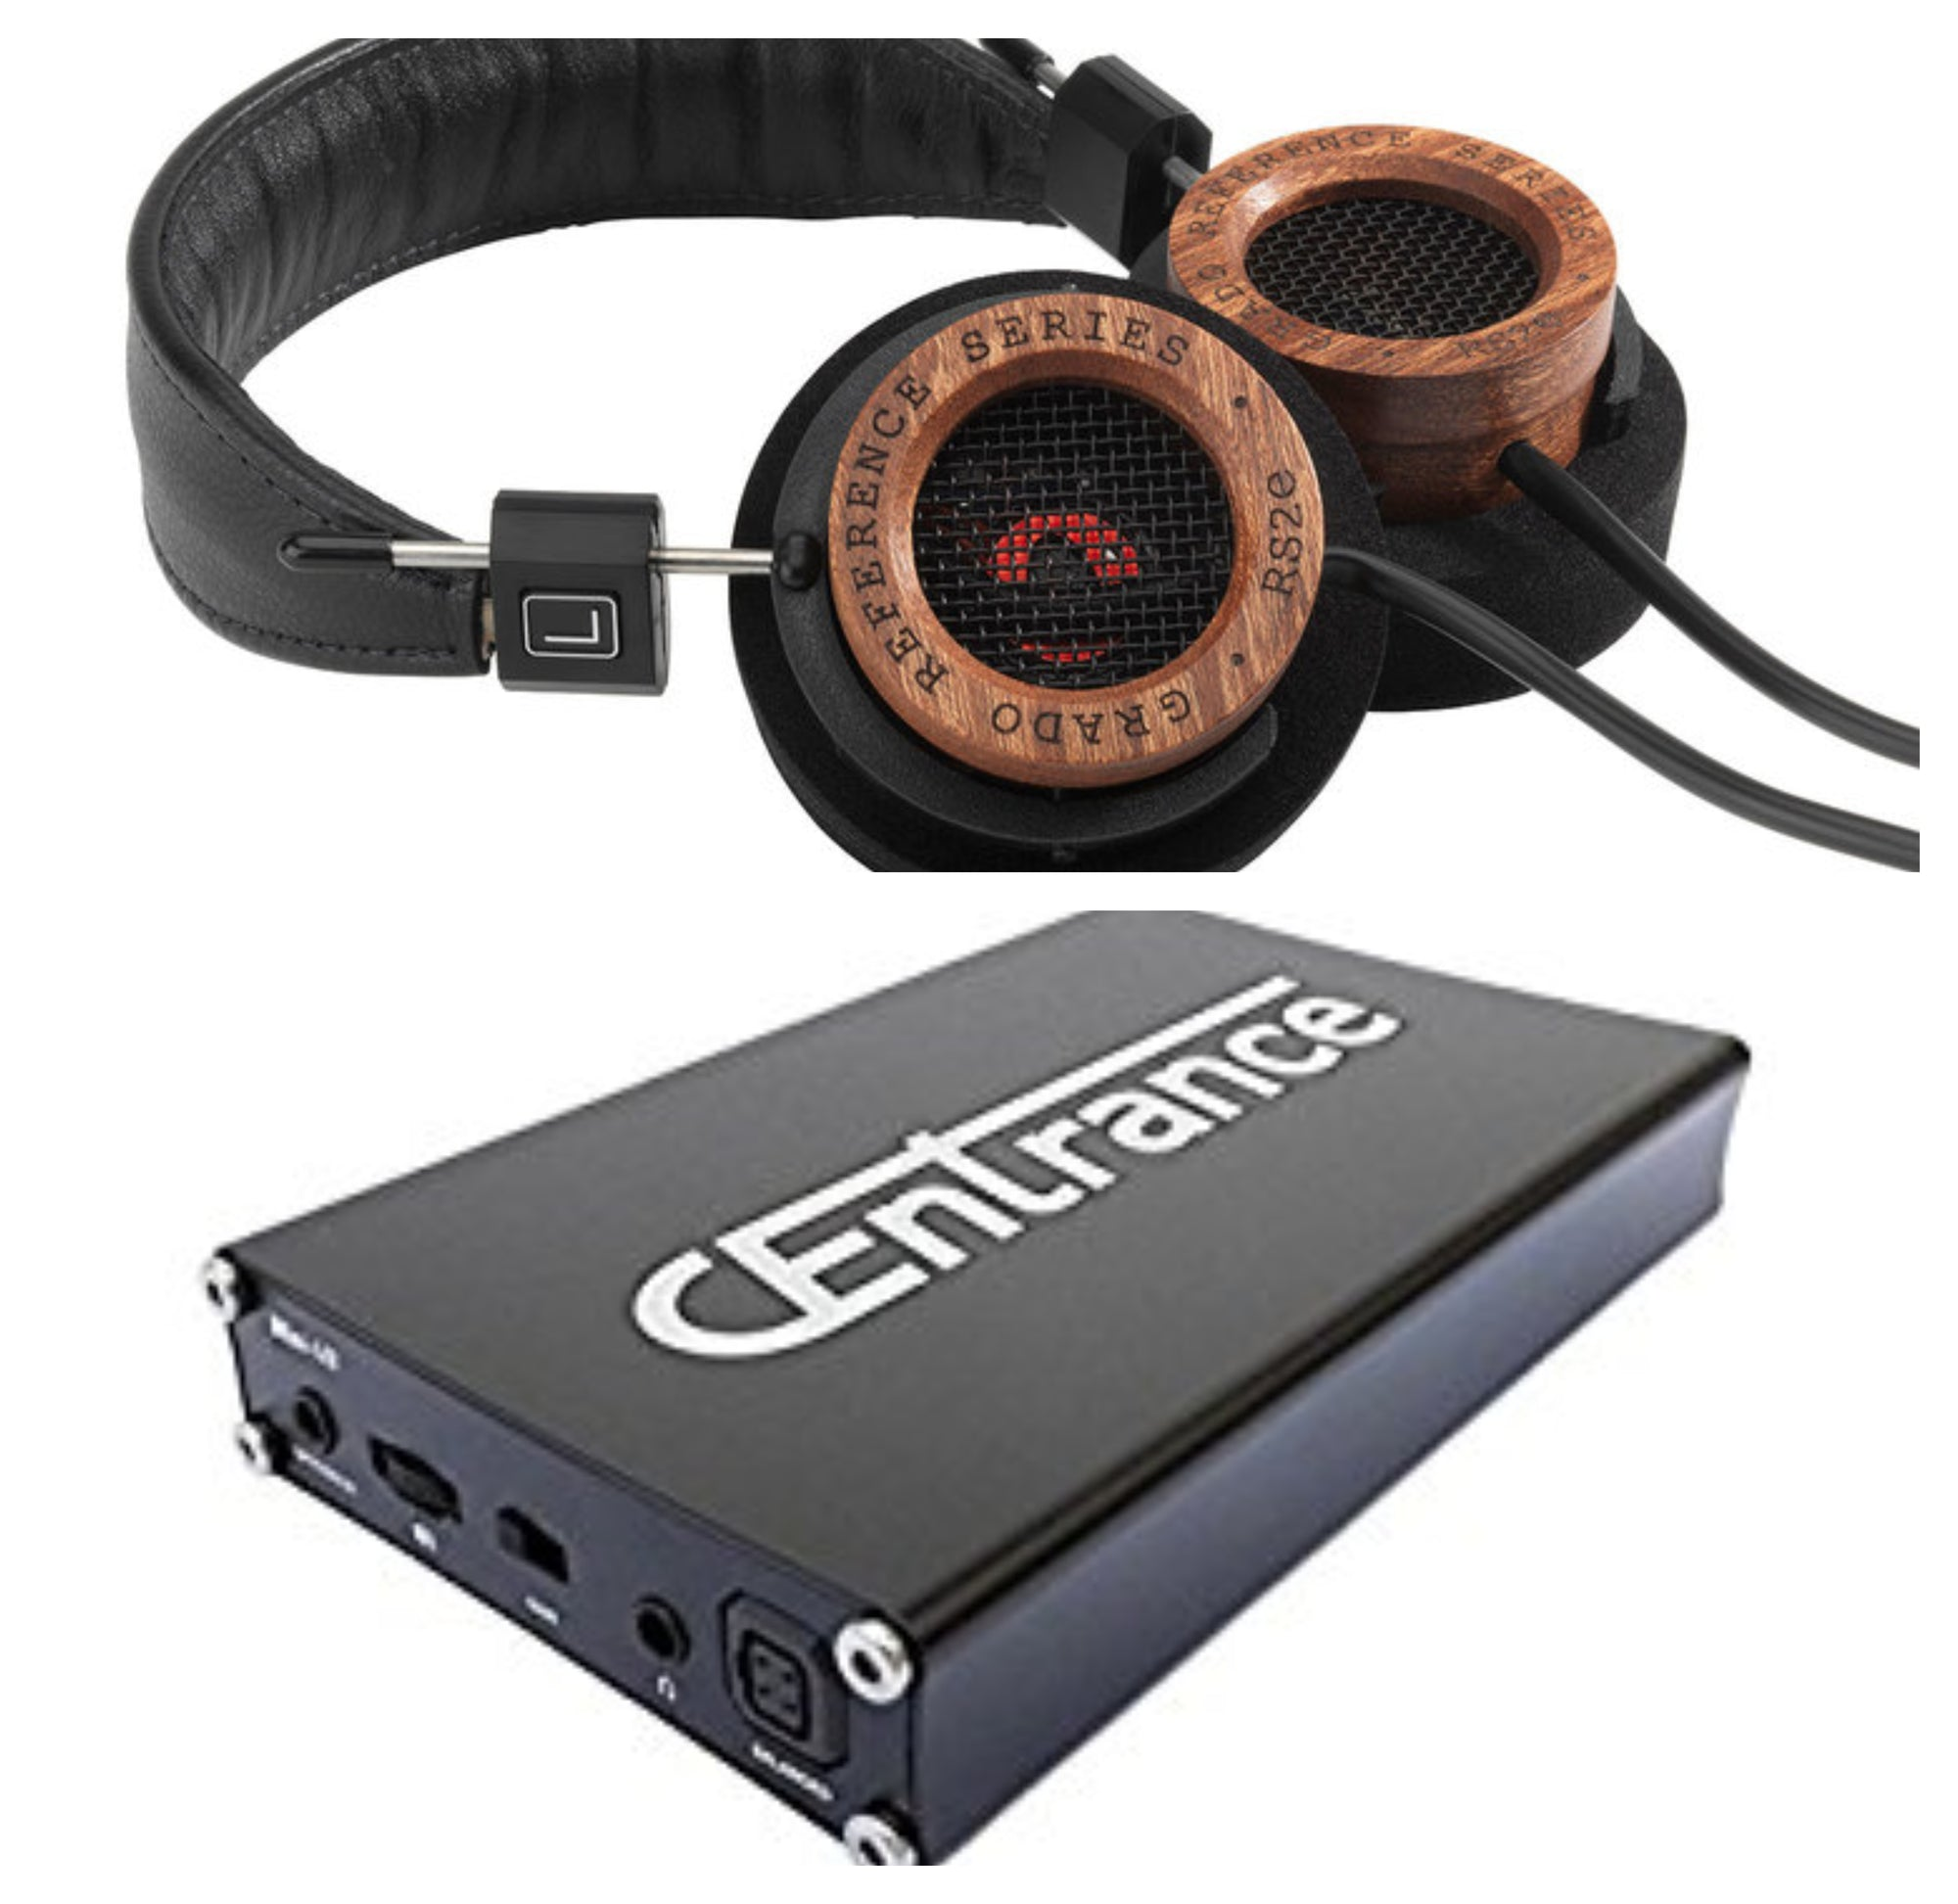 [Combo] Grado RS2e Headphones + CEntrance Mini M8